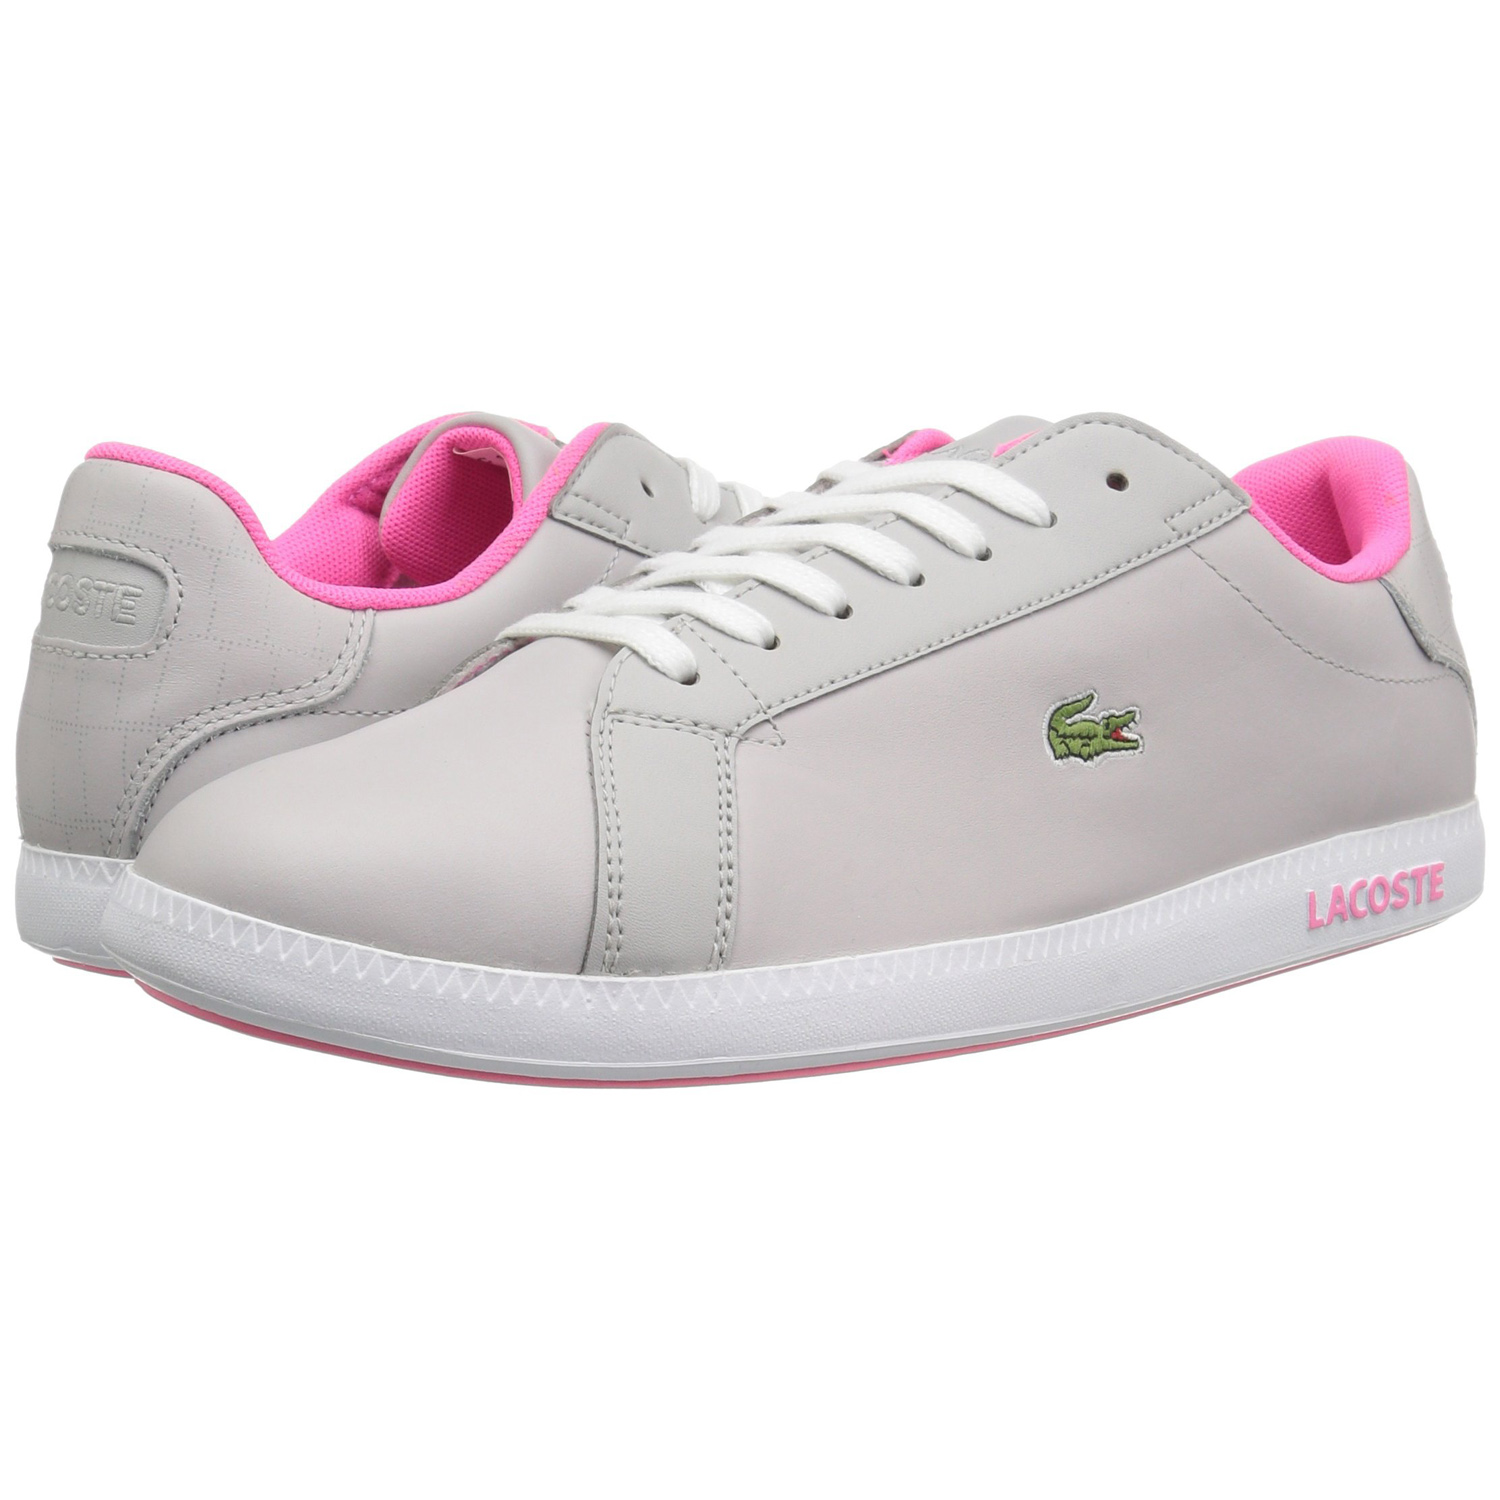 538e6ebe2f22 Step your style game up to the next vele with the Lacoste Graduate 1 Sneaker.  This court-inspired lace-up sneaker has a nappa leather upper with feminine  ...